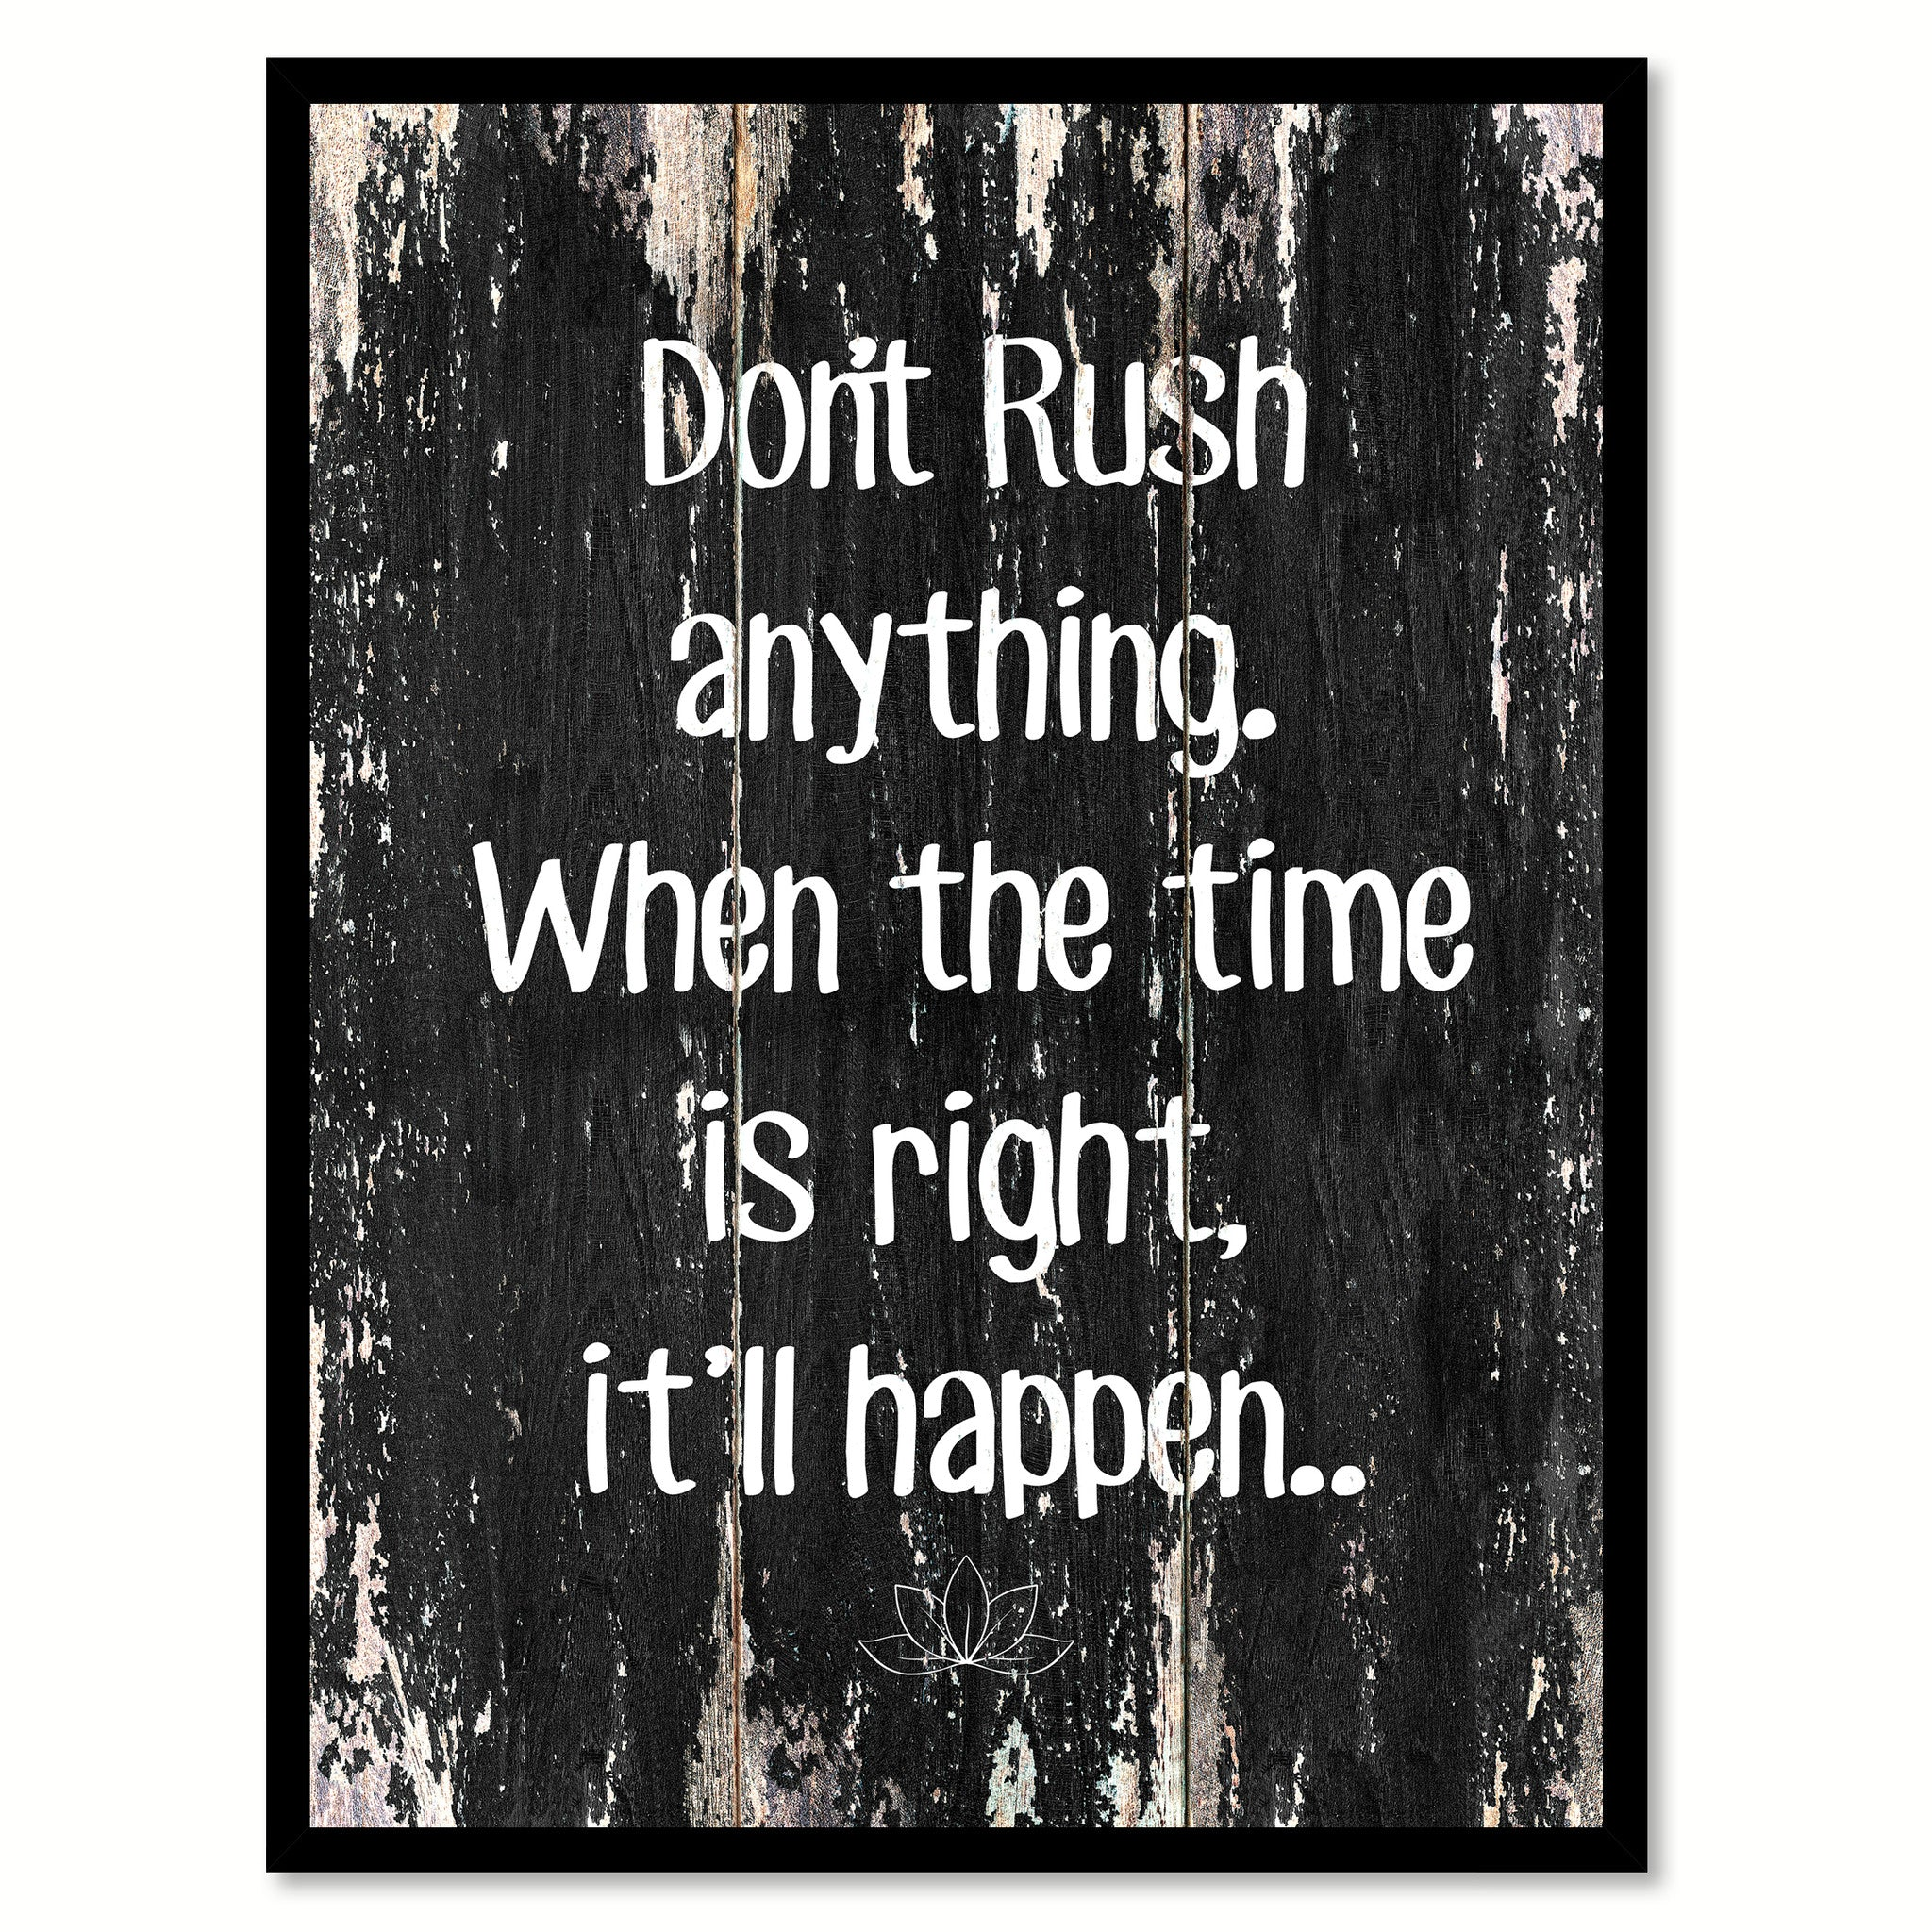 Don't rush anything when the time is right it'll happen Motivational Quote Saying Canvas Print with Picture Frame Home Decor Wall Art